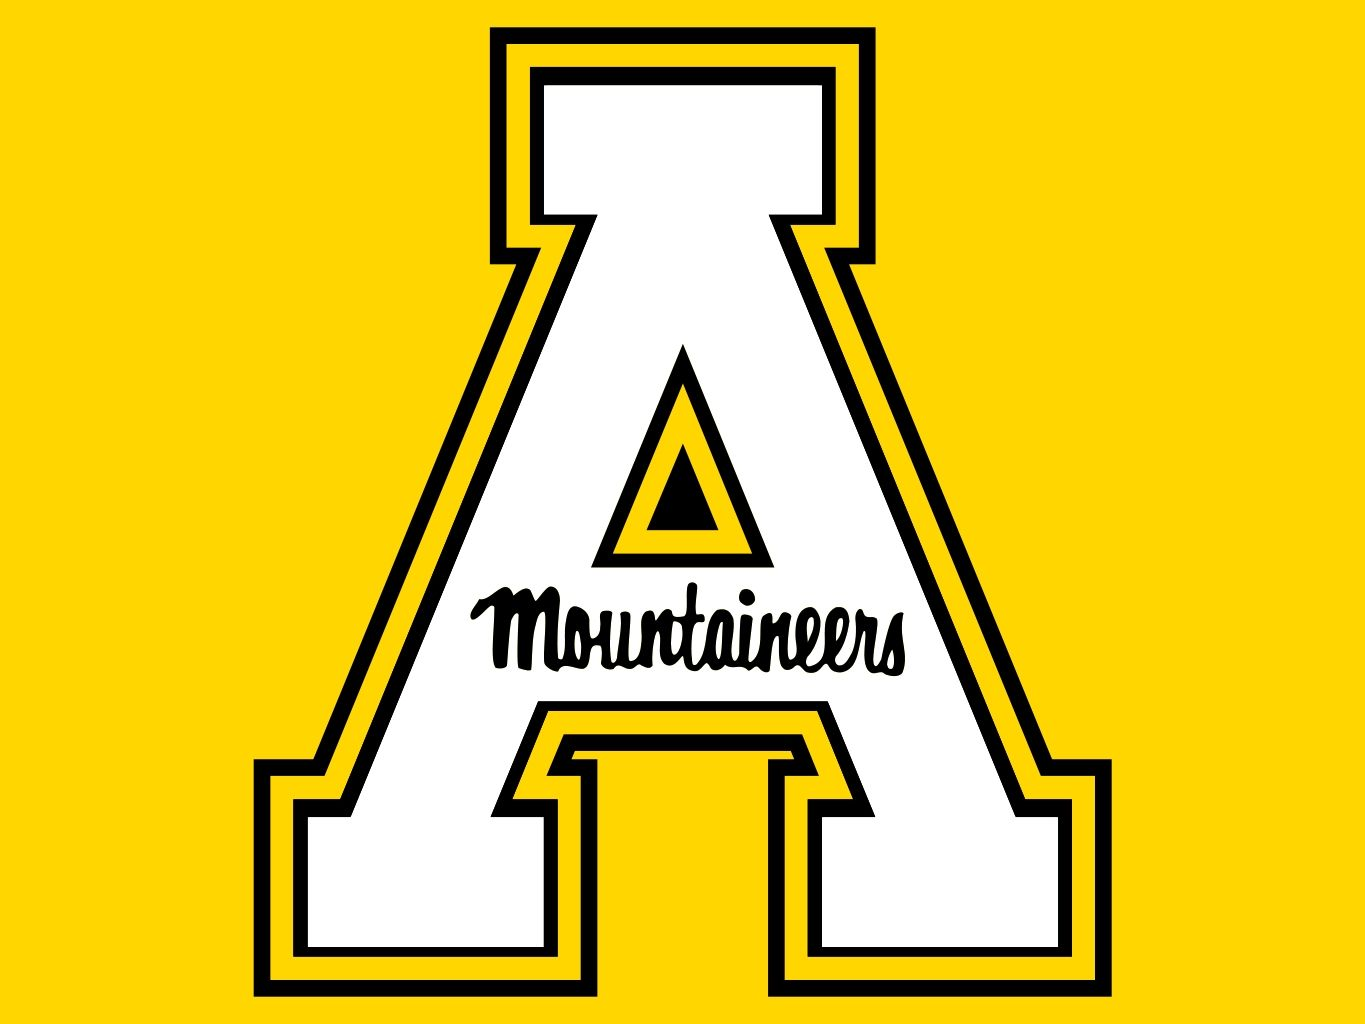 Appalachian State! Love Go Mountaineers! Accepted and